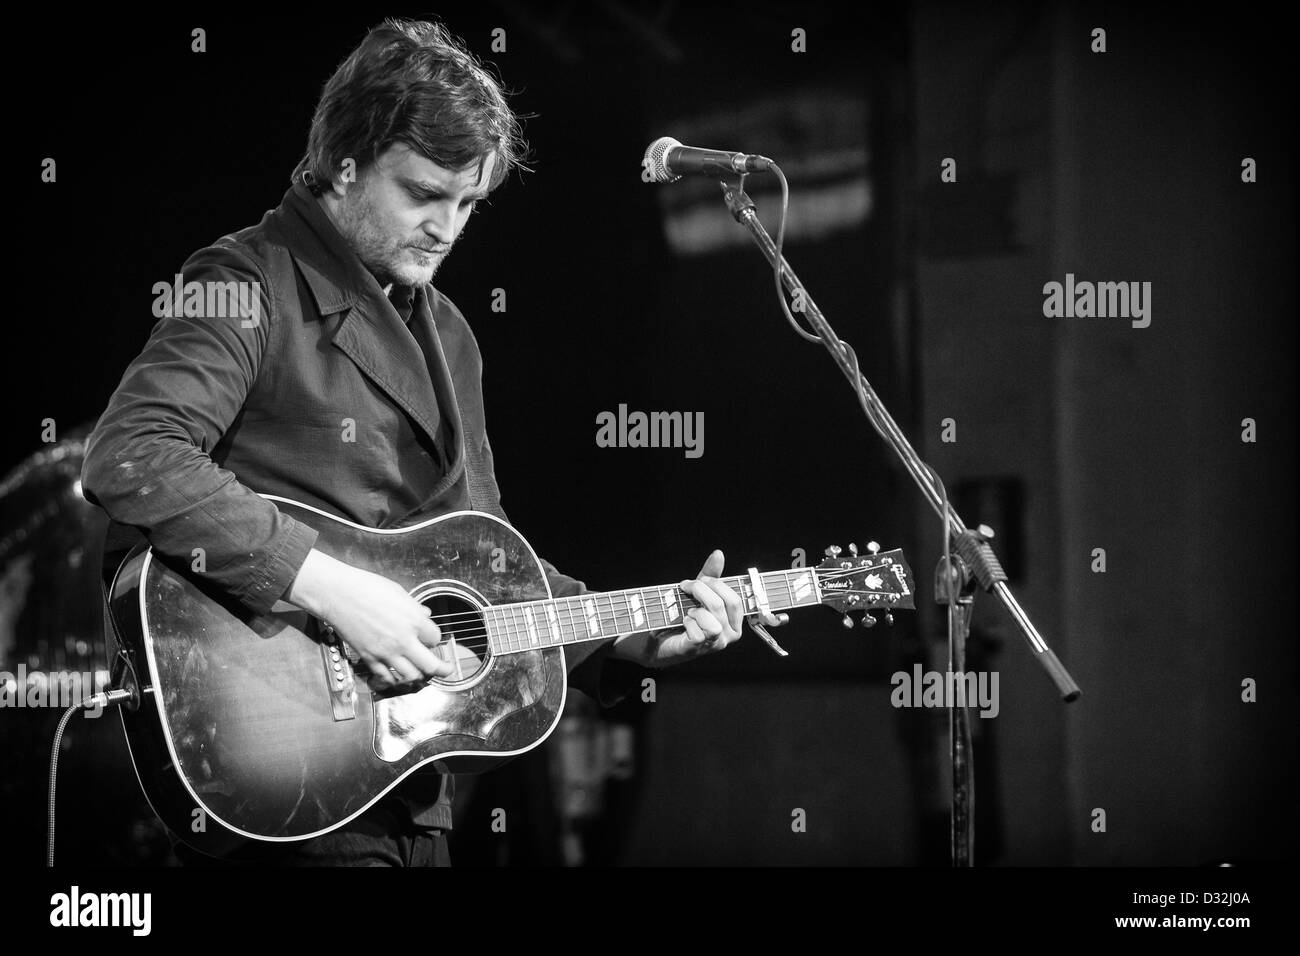 February 05, 2013 - James Walsh, songwriter and ex frontman of Starsailors, live at the OCA, Milan, Italy - Stock Image